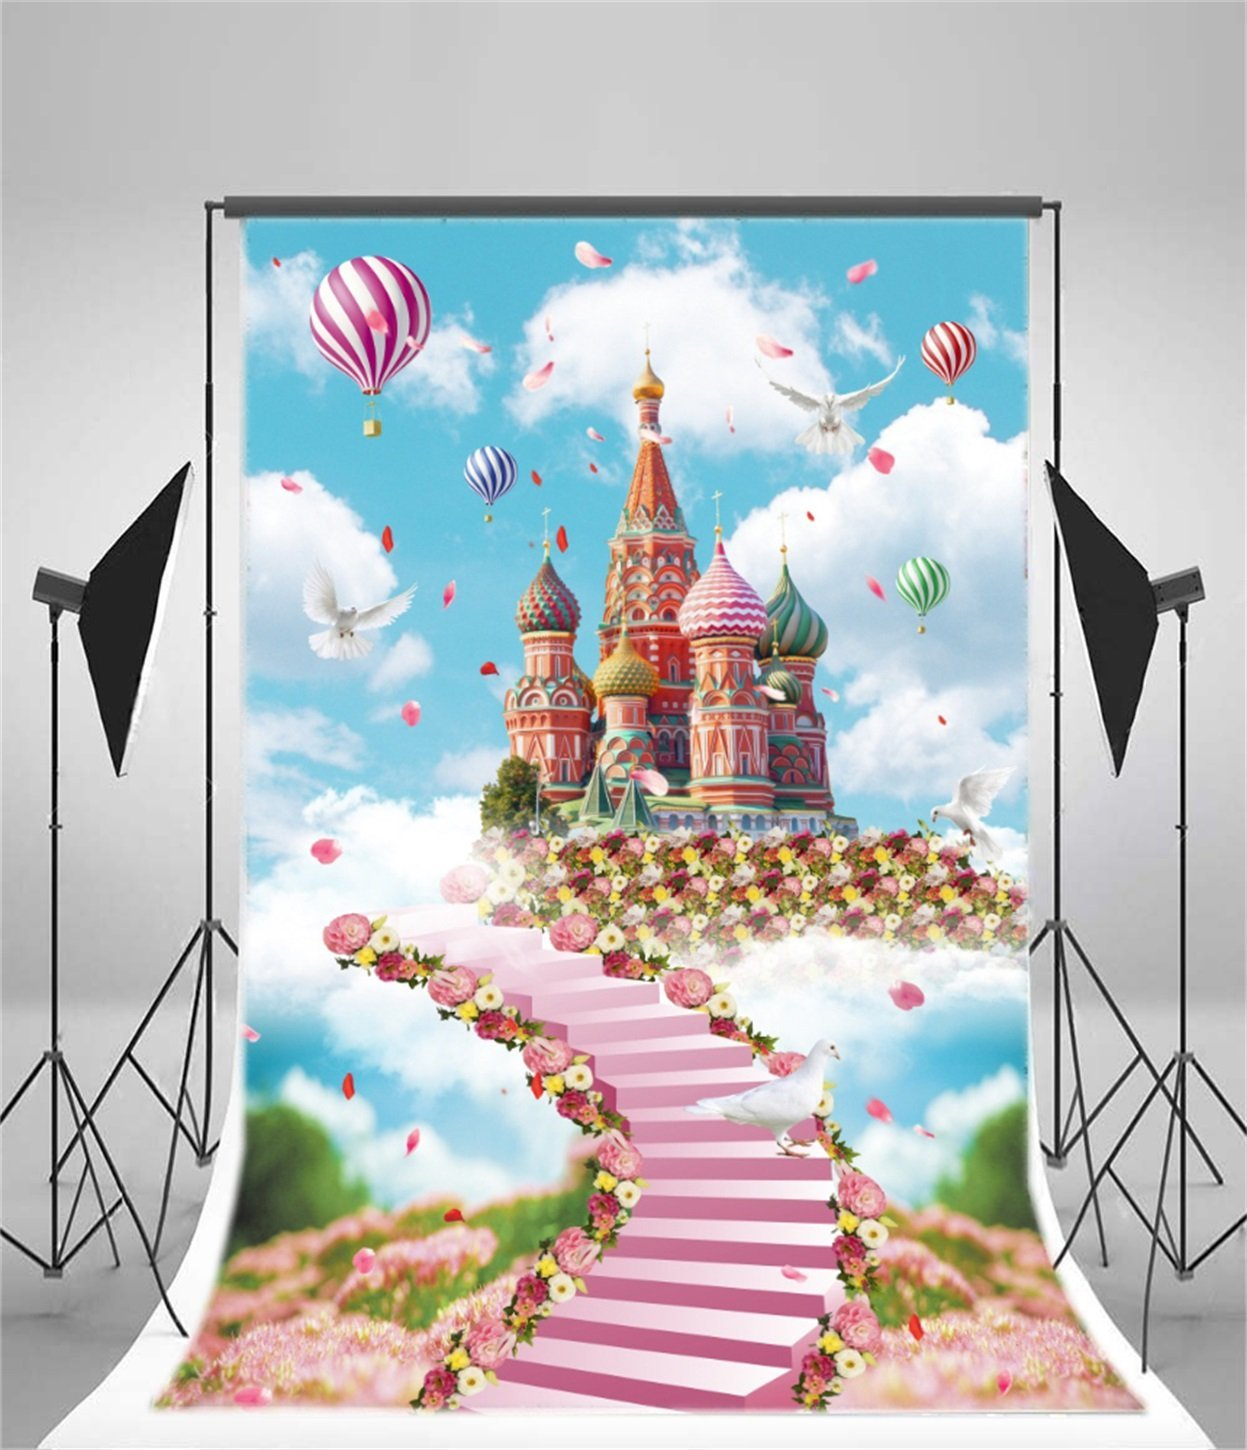 princess fairy tale castle flowers staircase sky clouds hot air balloon backdrops Vinyl cloth Computer print wall Background